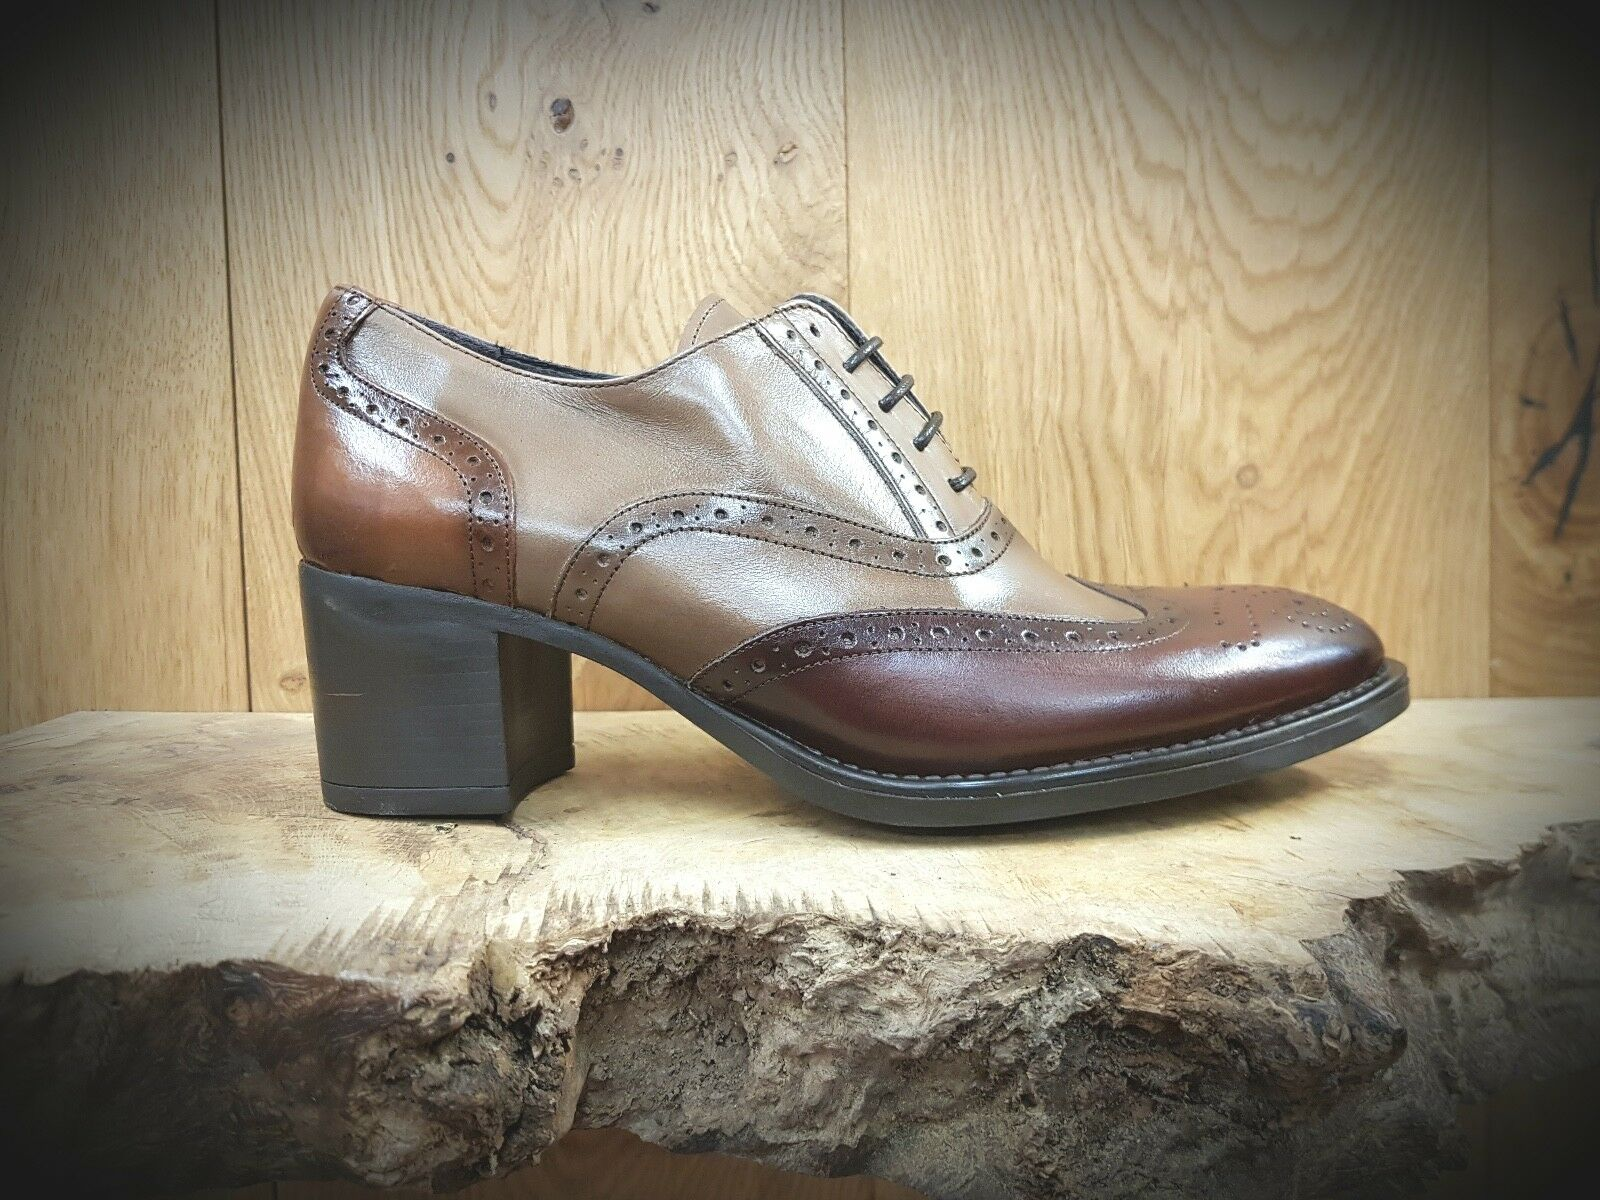 Luis Gonzalo // 4351M // Handmade 'Taupe' Damenschuhe Leder Brogues Schuhes // NEW